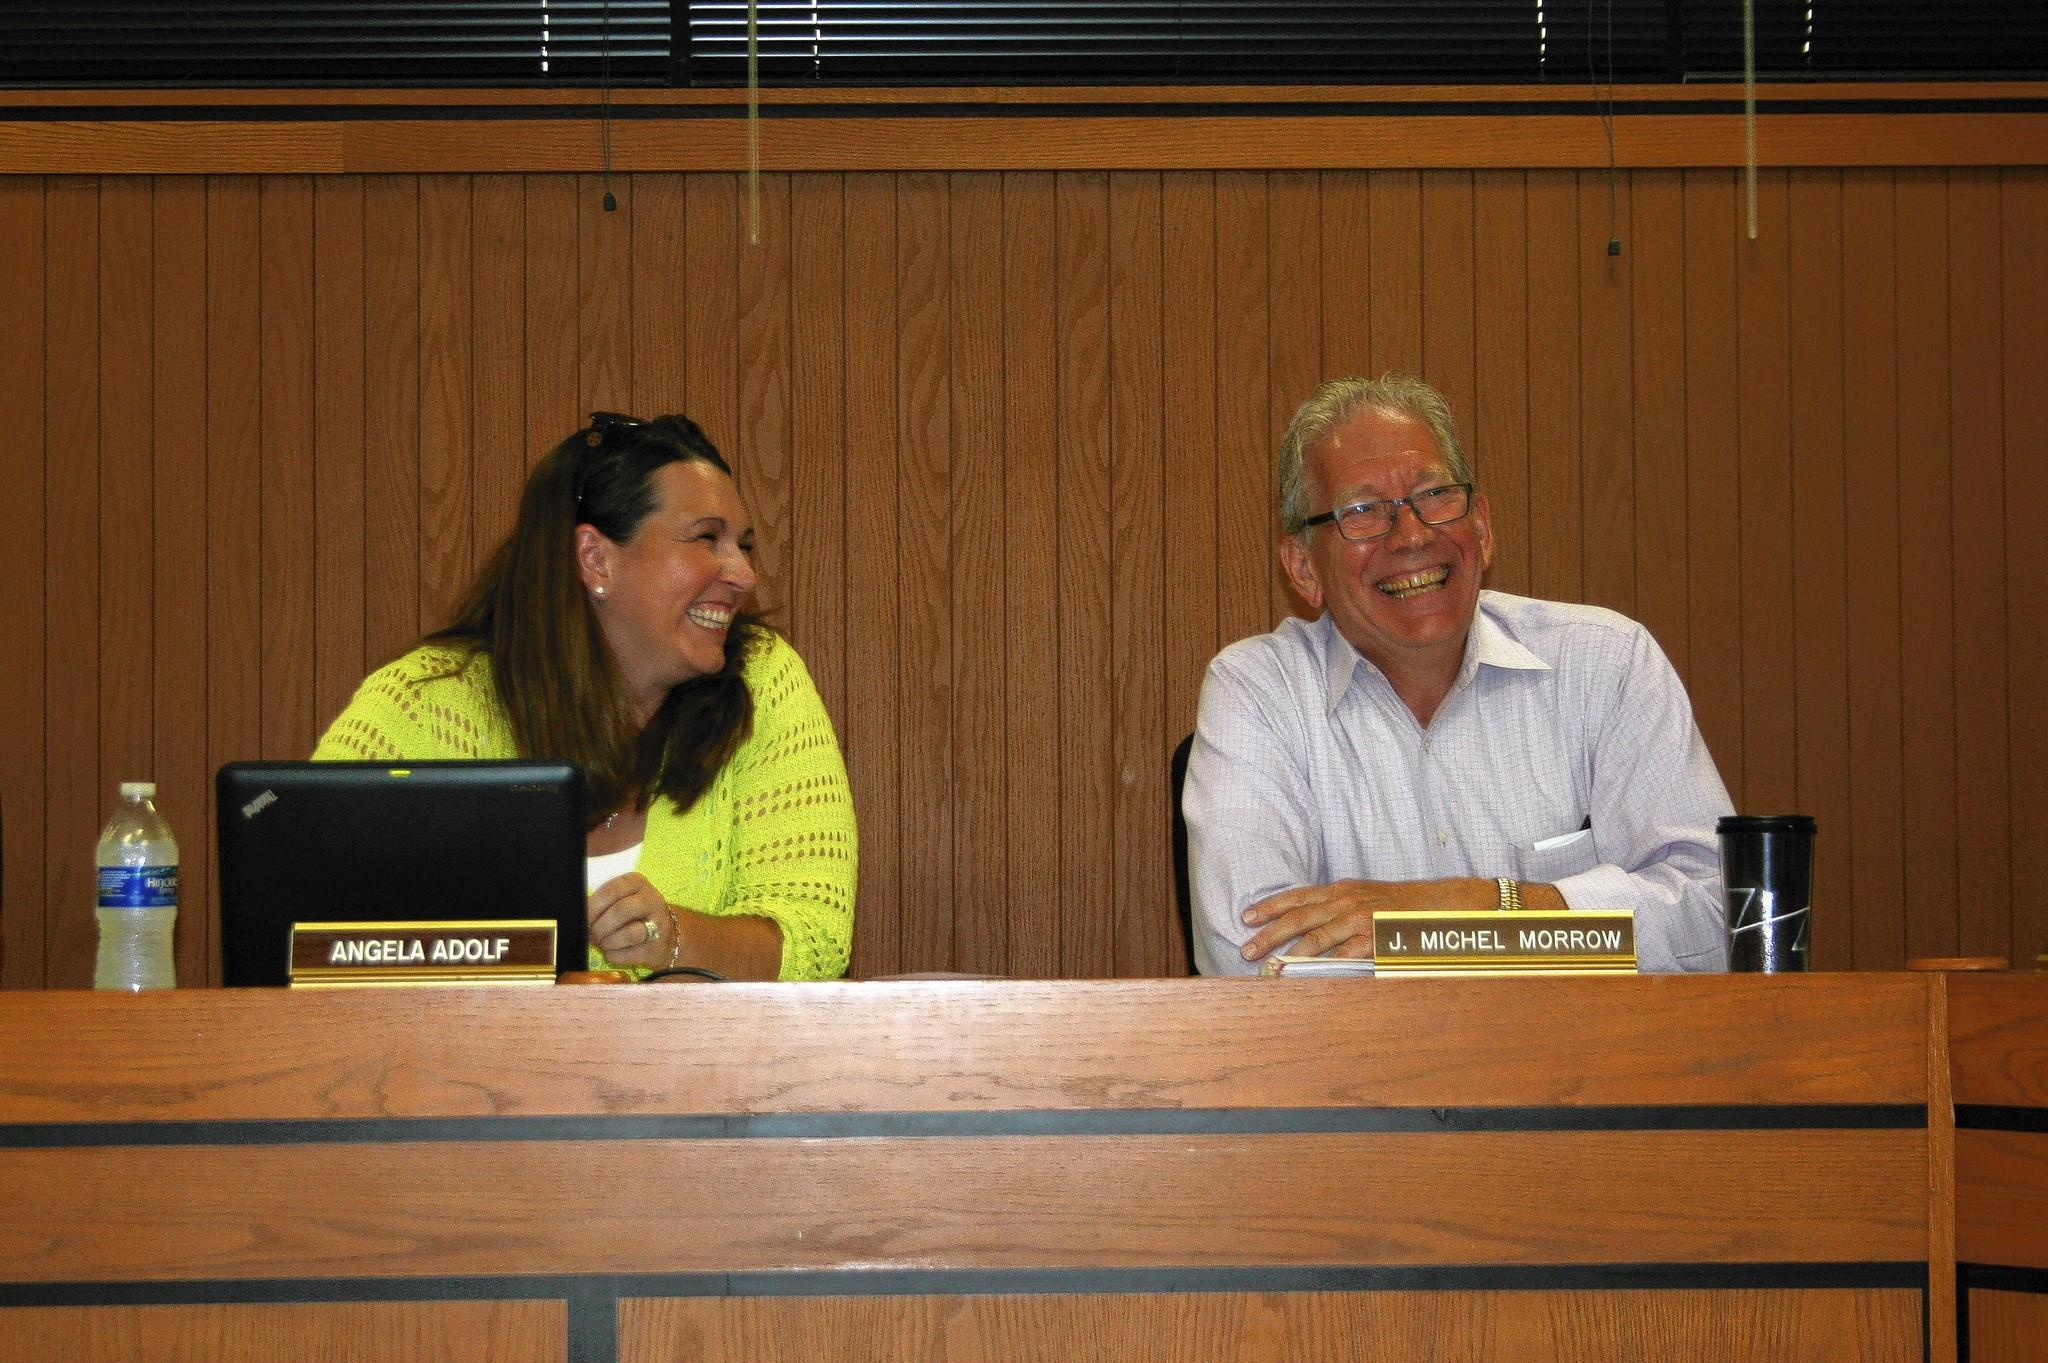 J. Michel Morrow shares a laugh with school board President Angela Adolf during his last meeting as superintendent of Homer Community Consolidated School District 33C.